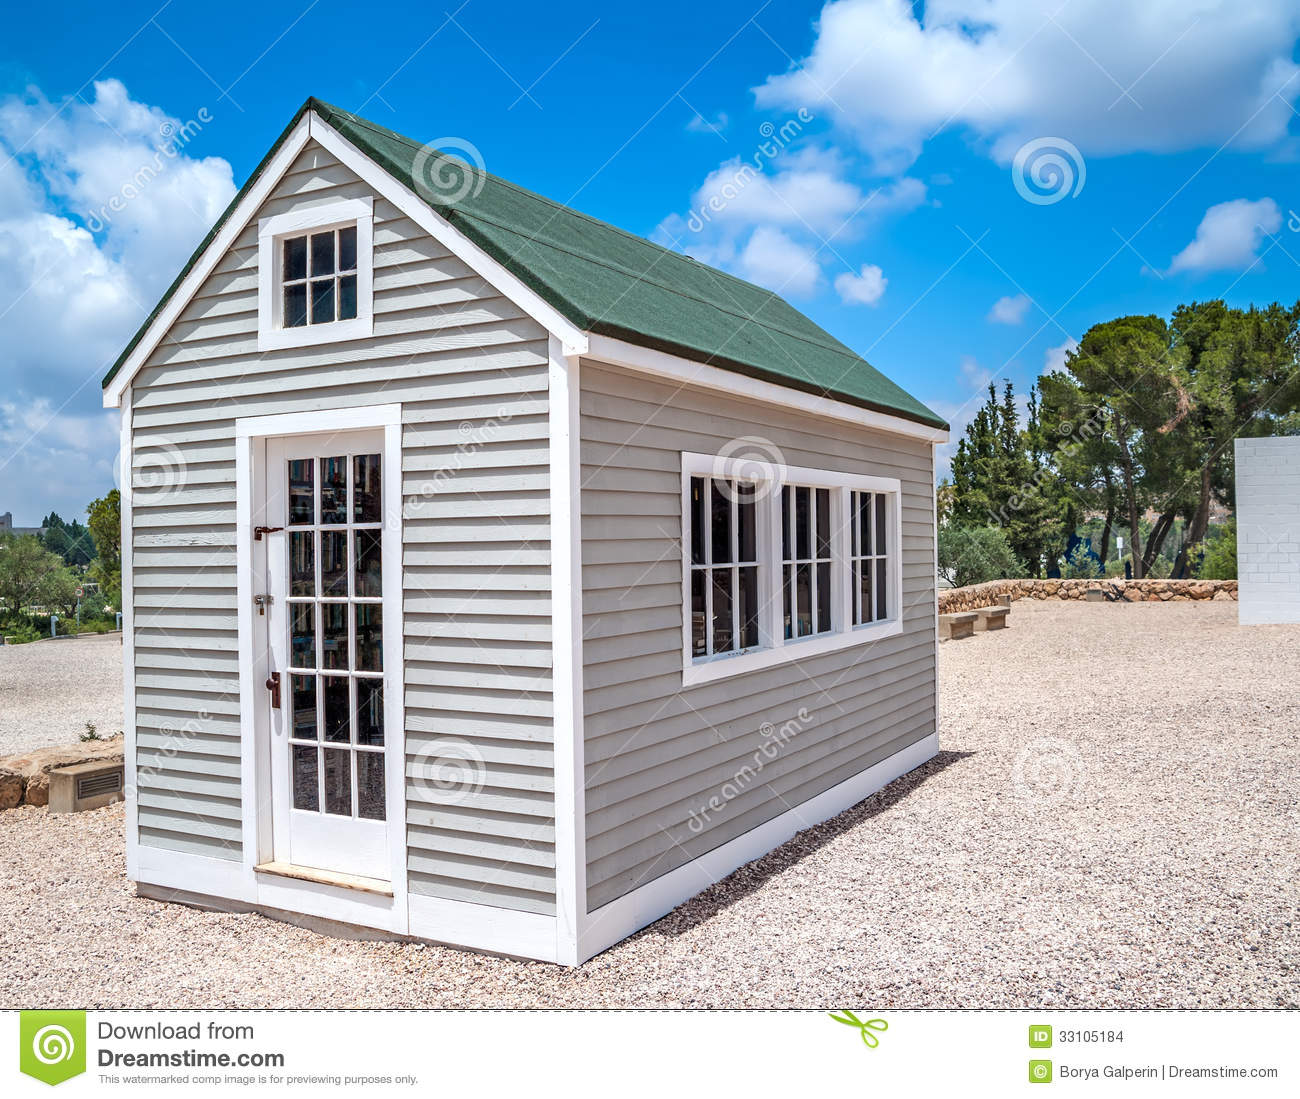 White Wood House : Small Wooden House Stock Images - Image: 33105184